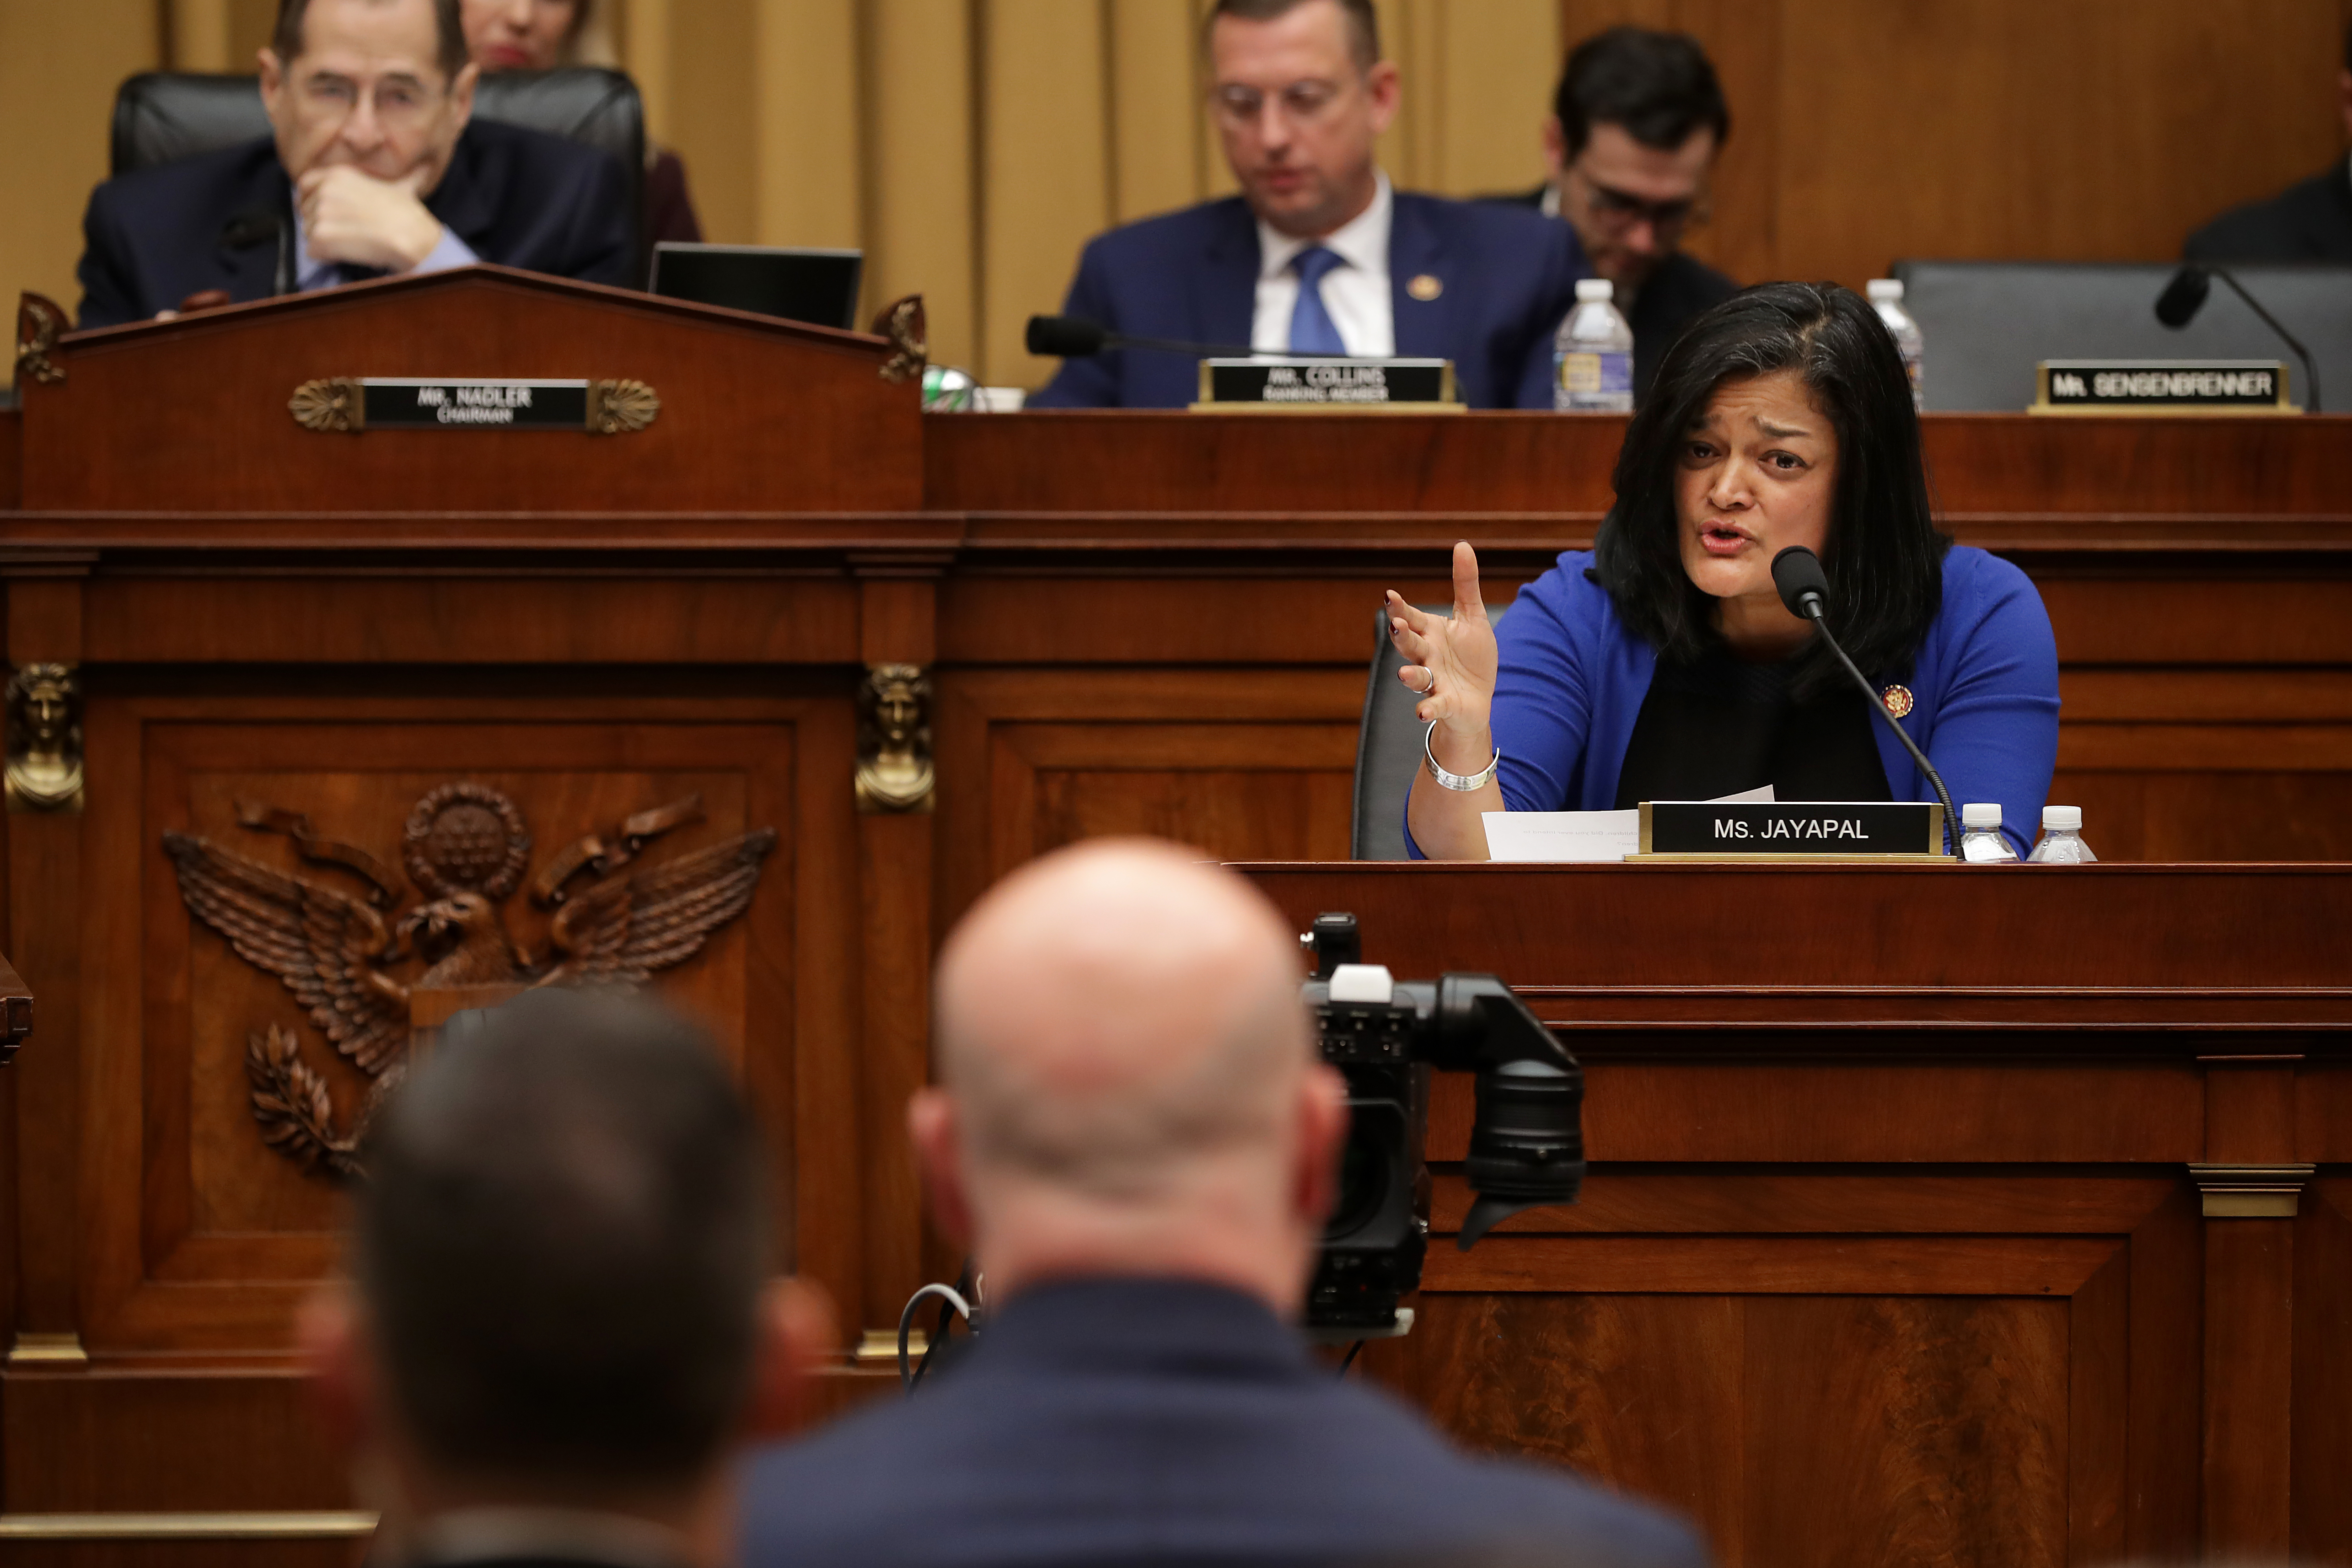 House Judiciary Committee member Rep. Pramila Jayapal questions Acting U.S. Attorney General Matthew Whitaker during an oversight hearing in the Rayburn House Office Building on Capitol Hill February 08, 2019 in Washington, DC. (Photo by Chip Somodevilla/Getty Images)